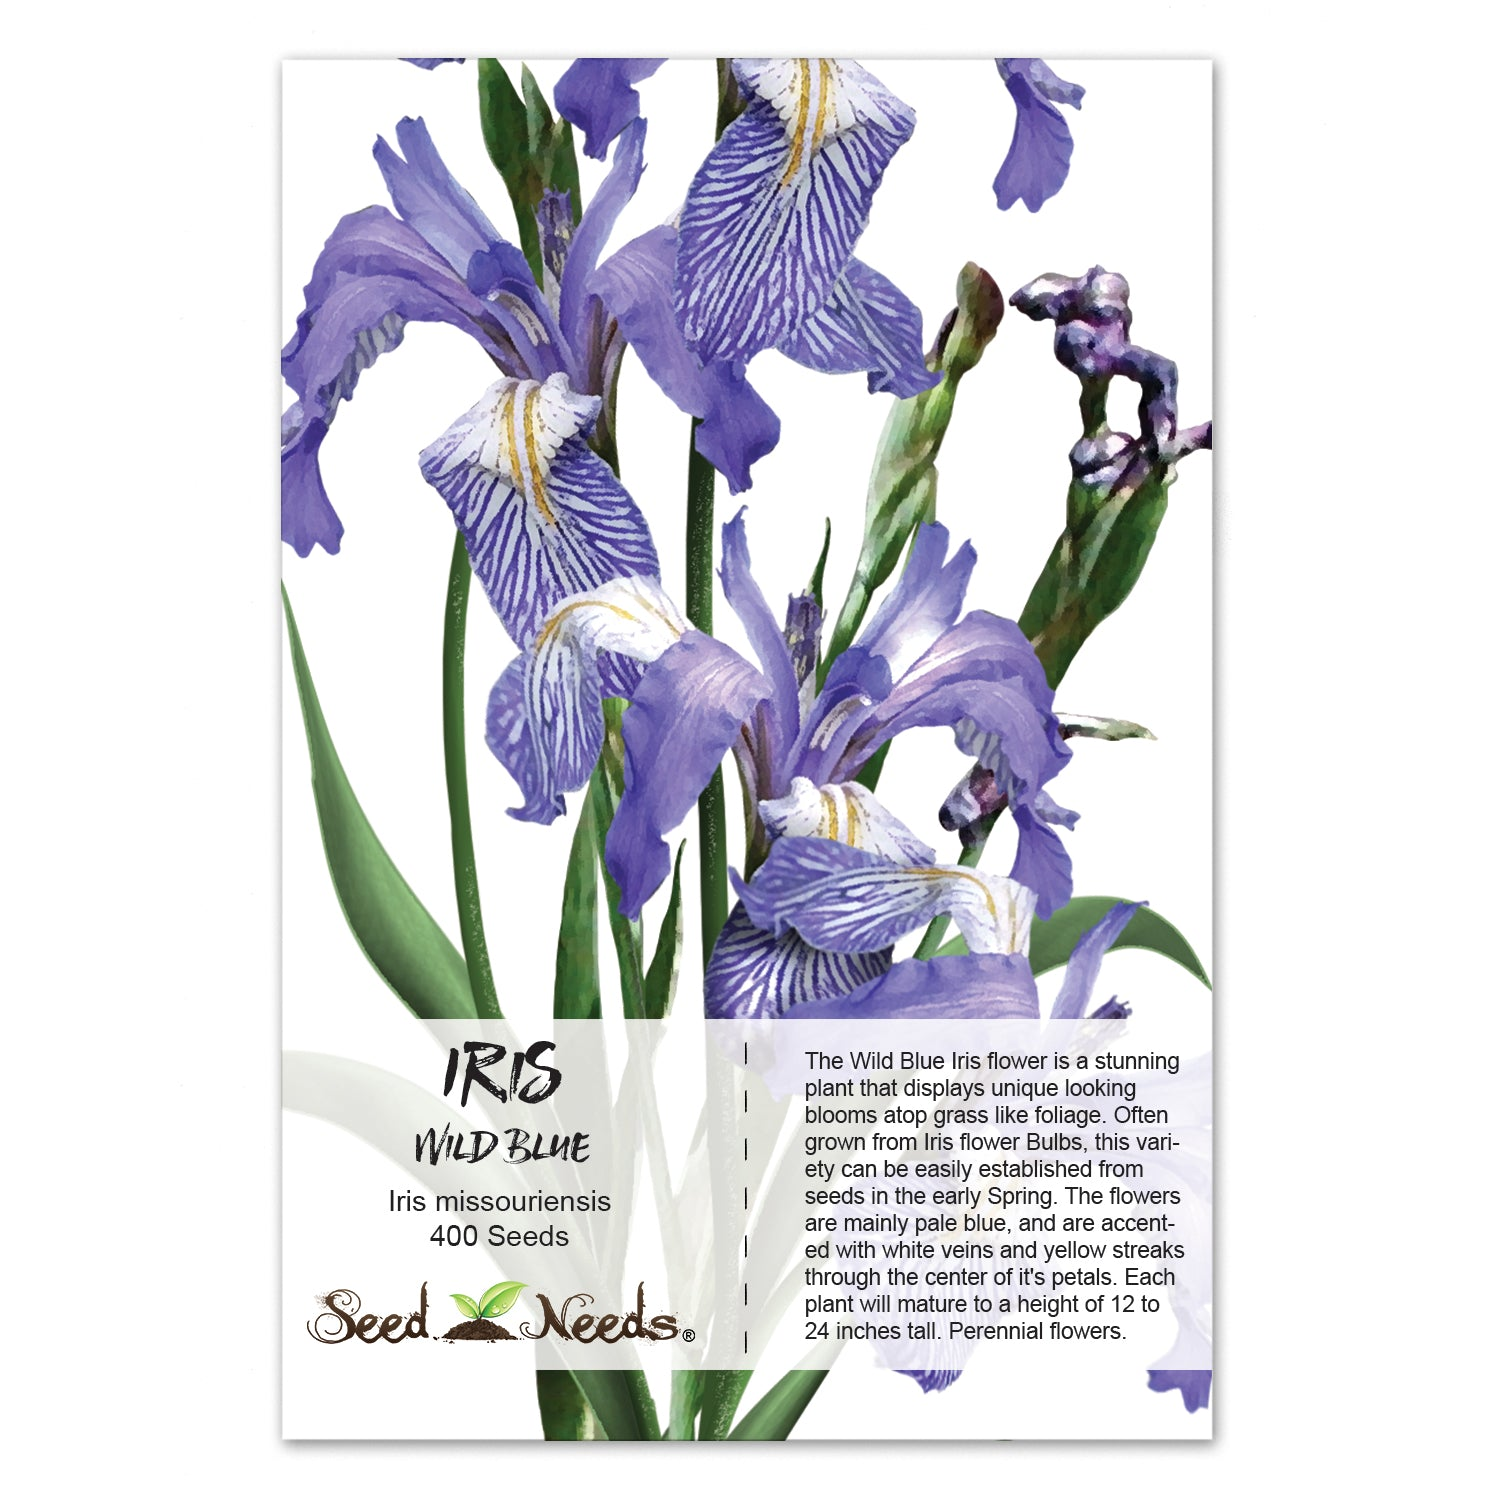 Wild Blue Iris Flower Seeds Iris Missouriensis